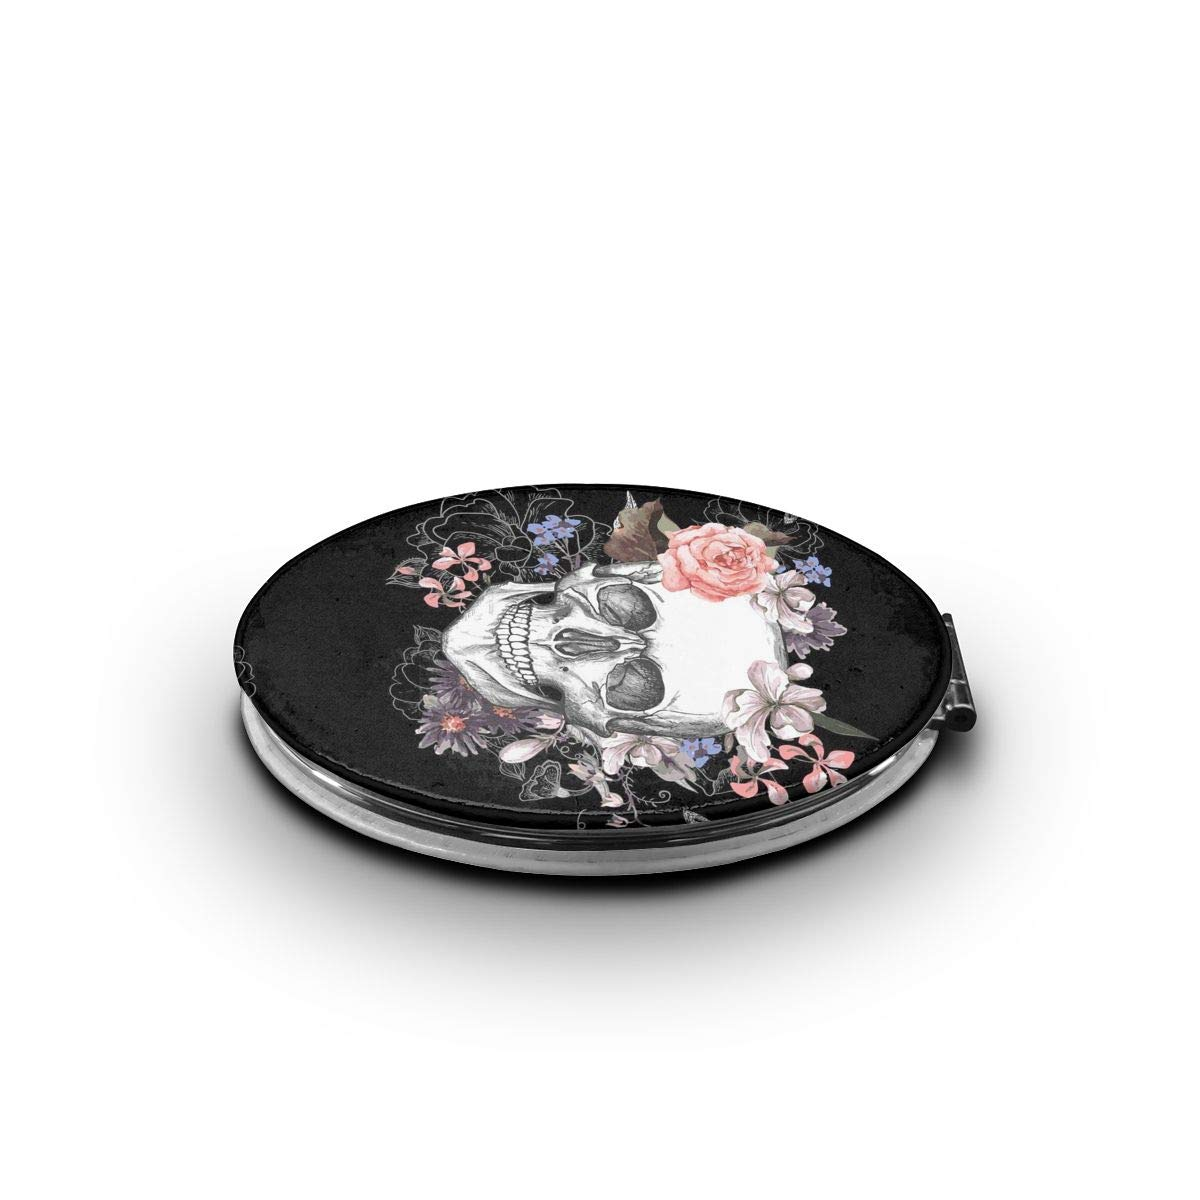 Compact Makeup Mirror - Pink Floral Sugar Skull Flower Folding Mini Pocket Portable Hand Mirror Double-sided For Purses And Travel With 2 X 1x Magnification For Woman Mother Kids Great Gift